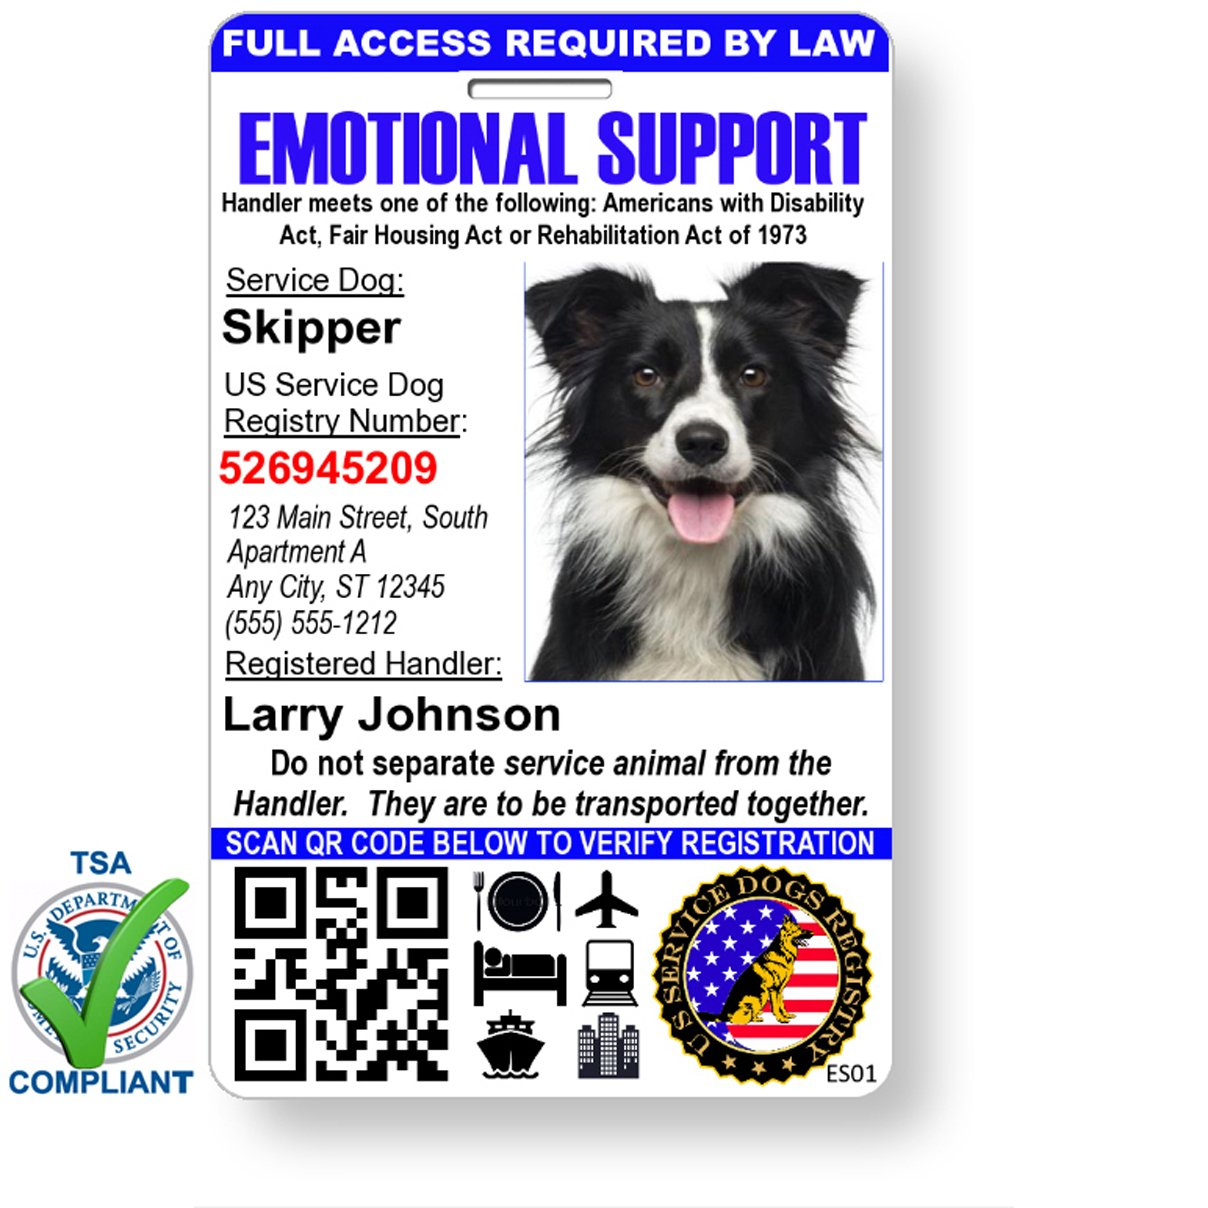 Just 4 Paws Custom Holographic QR Code Emotional Support Dog ID Card with Registration to Service Dogs Registry with Strap - Portrait Style by Just 4 Paws (Image #1)